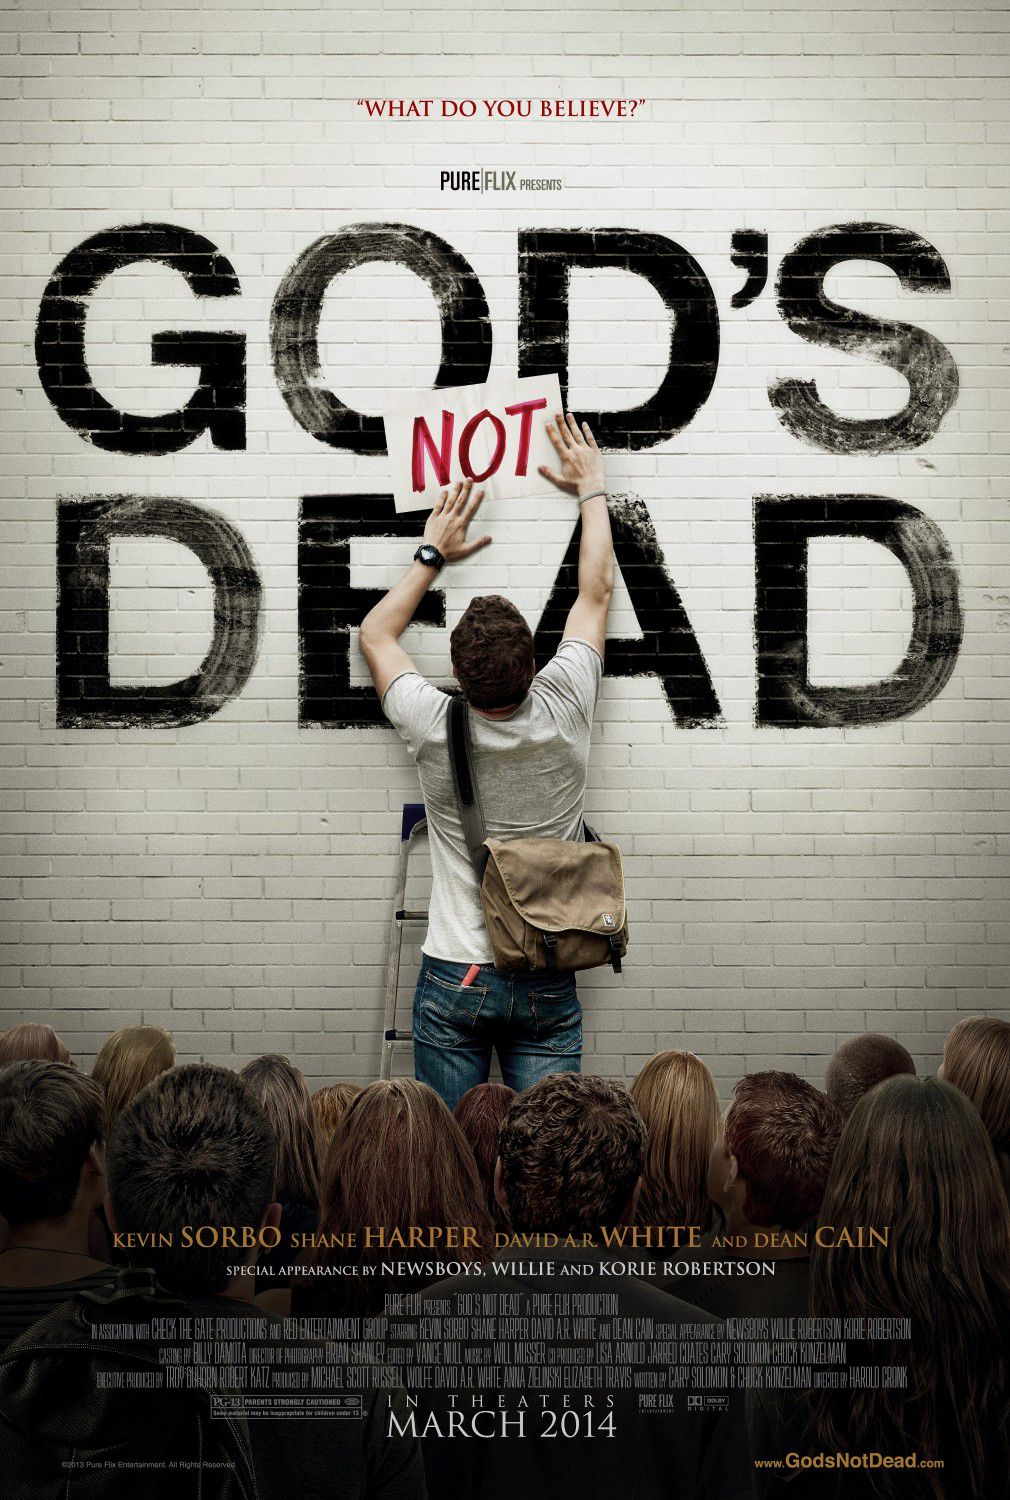 Gods not dead - film poster